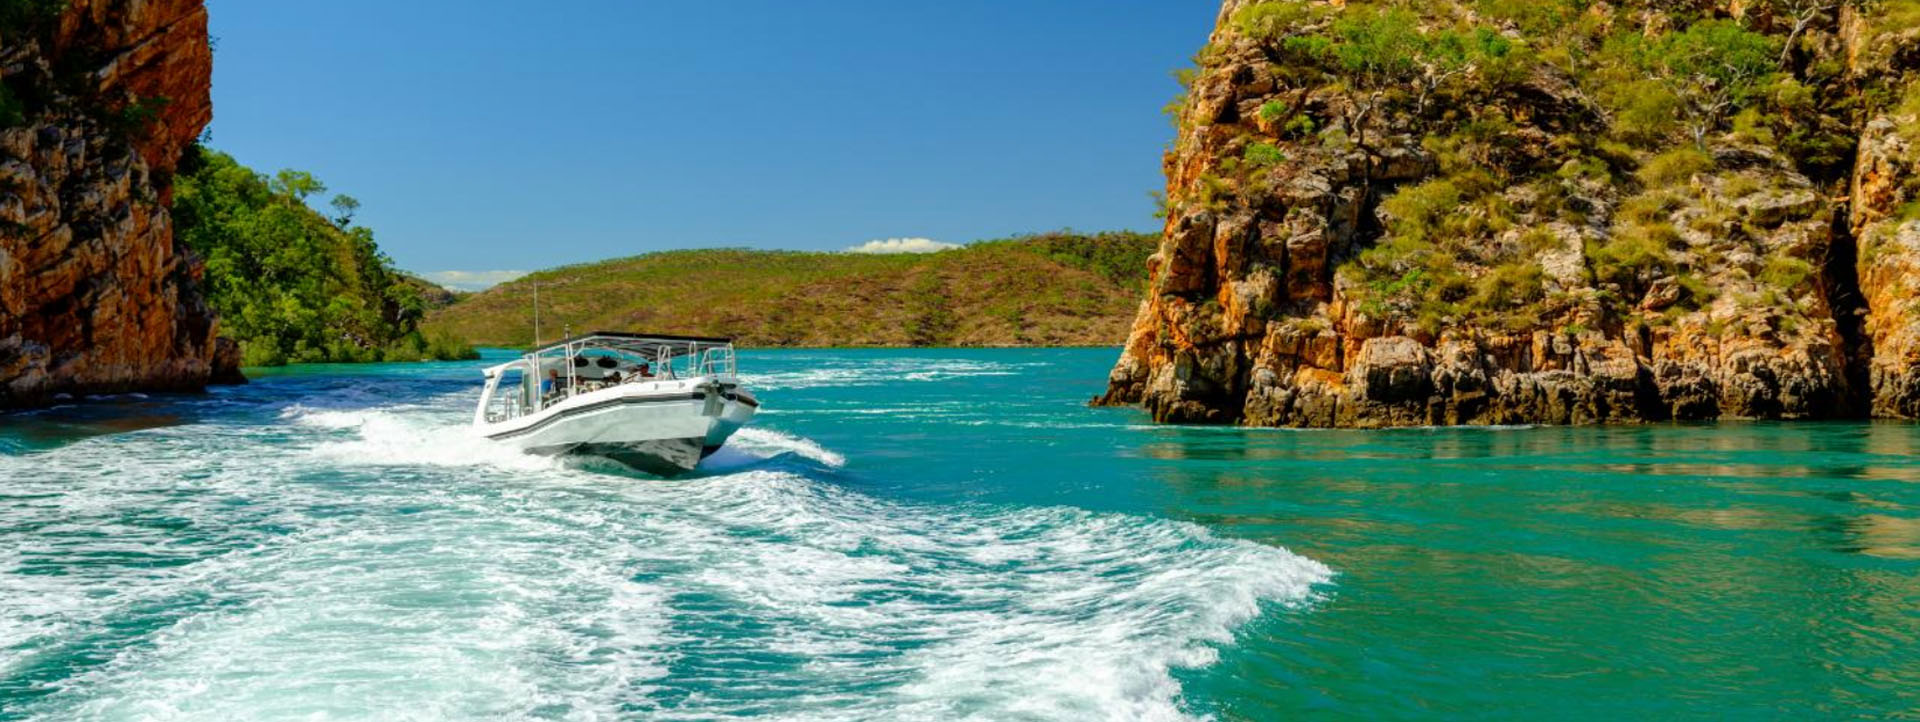 GO HORIZONTAL FALLS tours boat fast group